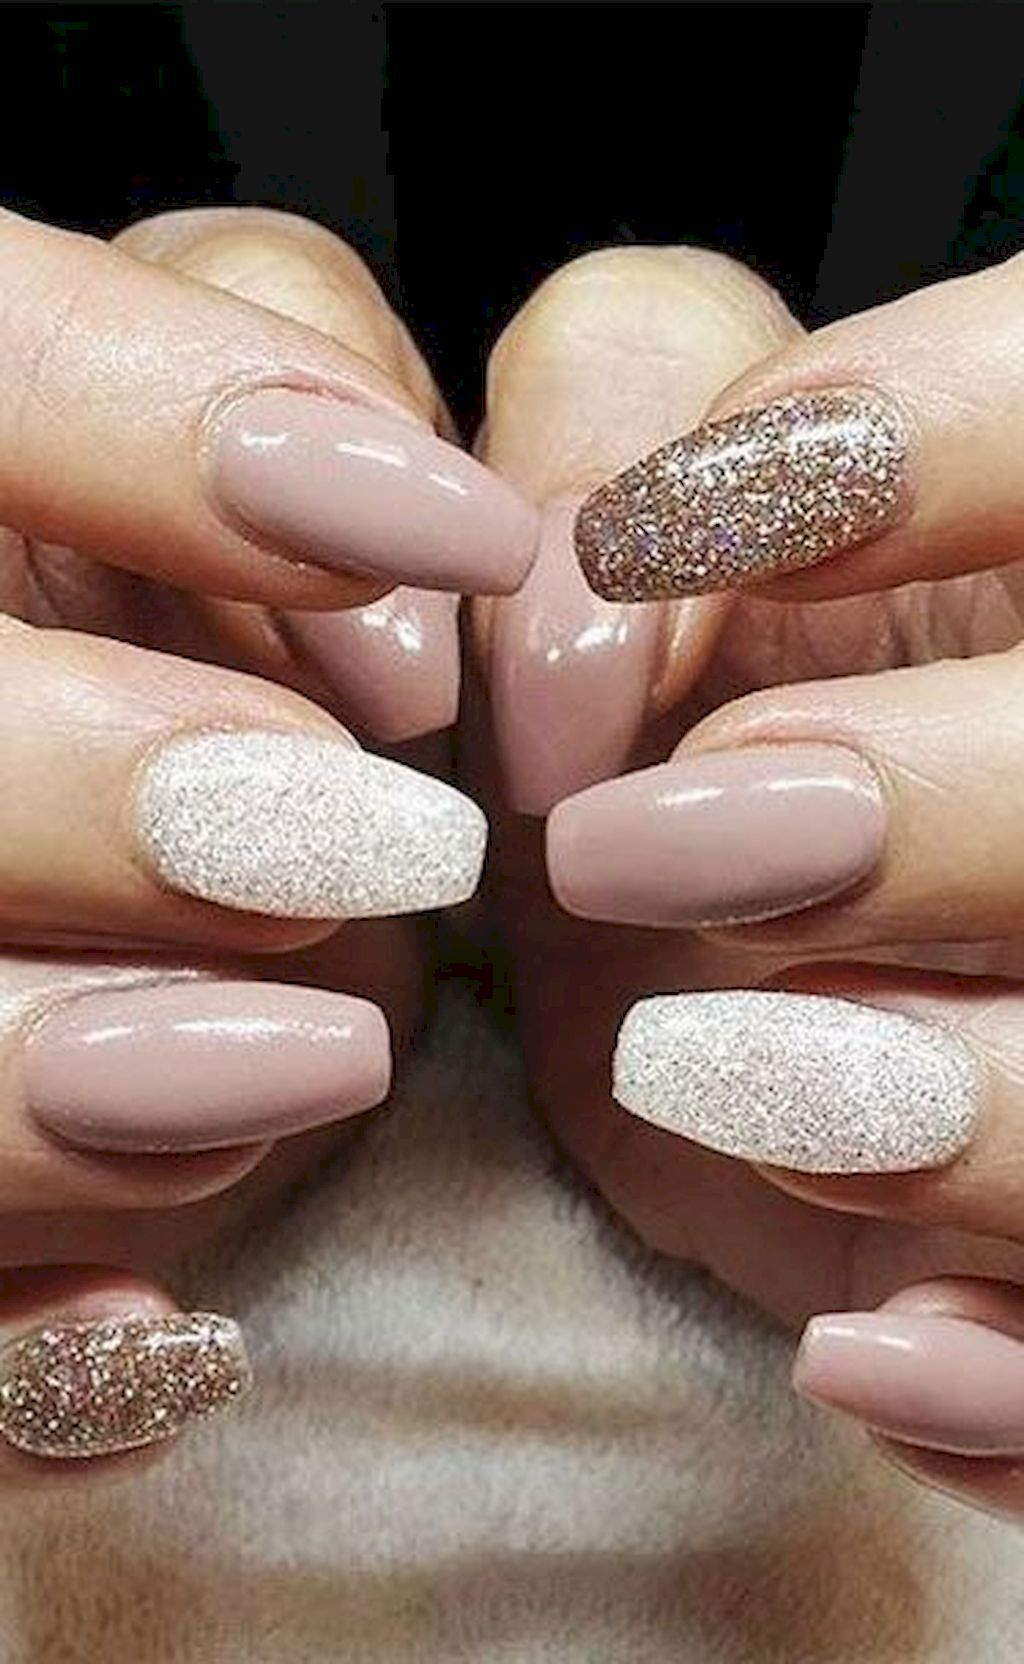 54 New Acrylic Nail Designs Ideas to Try This Year - 54 New Acrylic Nail Designs Ideas To Try This Year Nail Arts